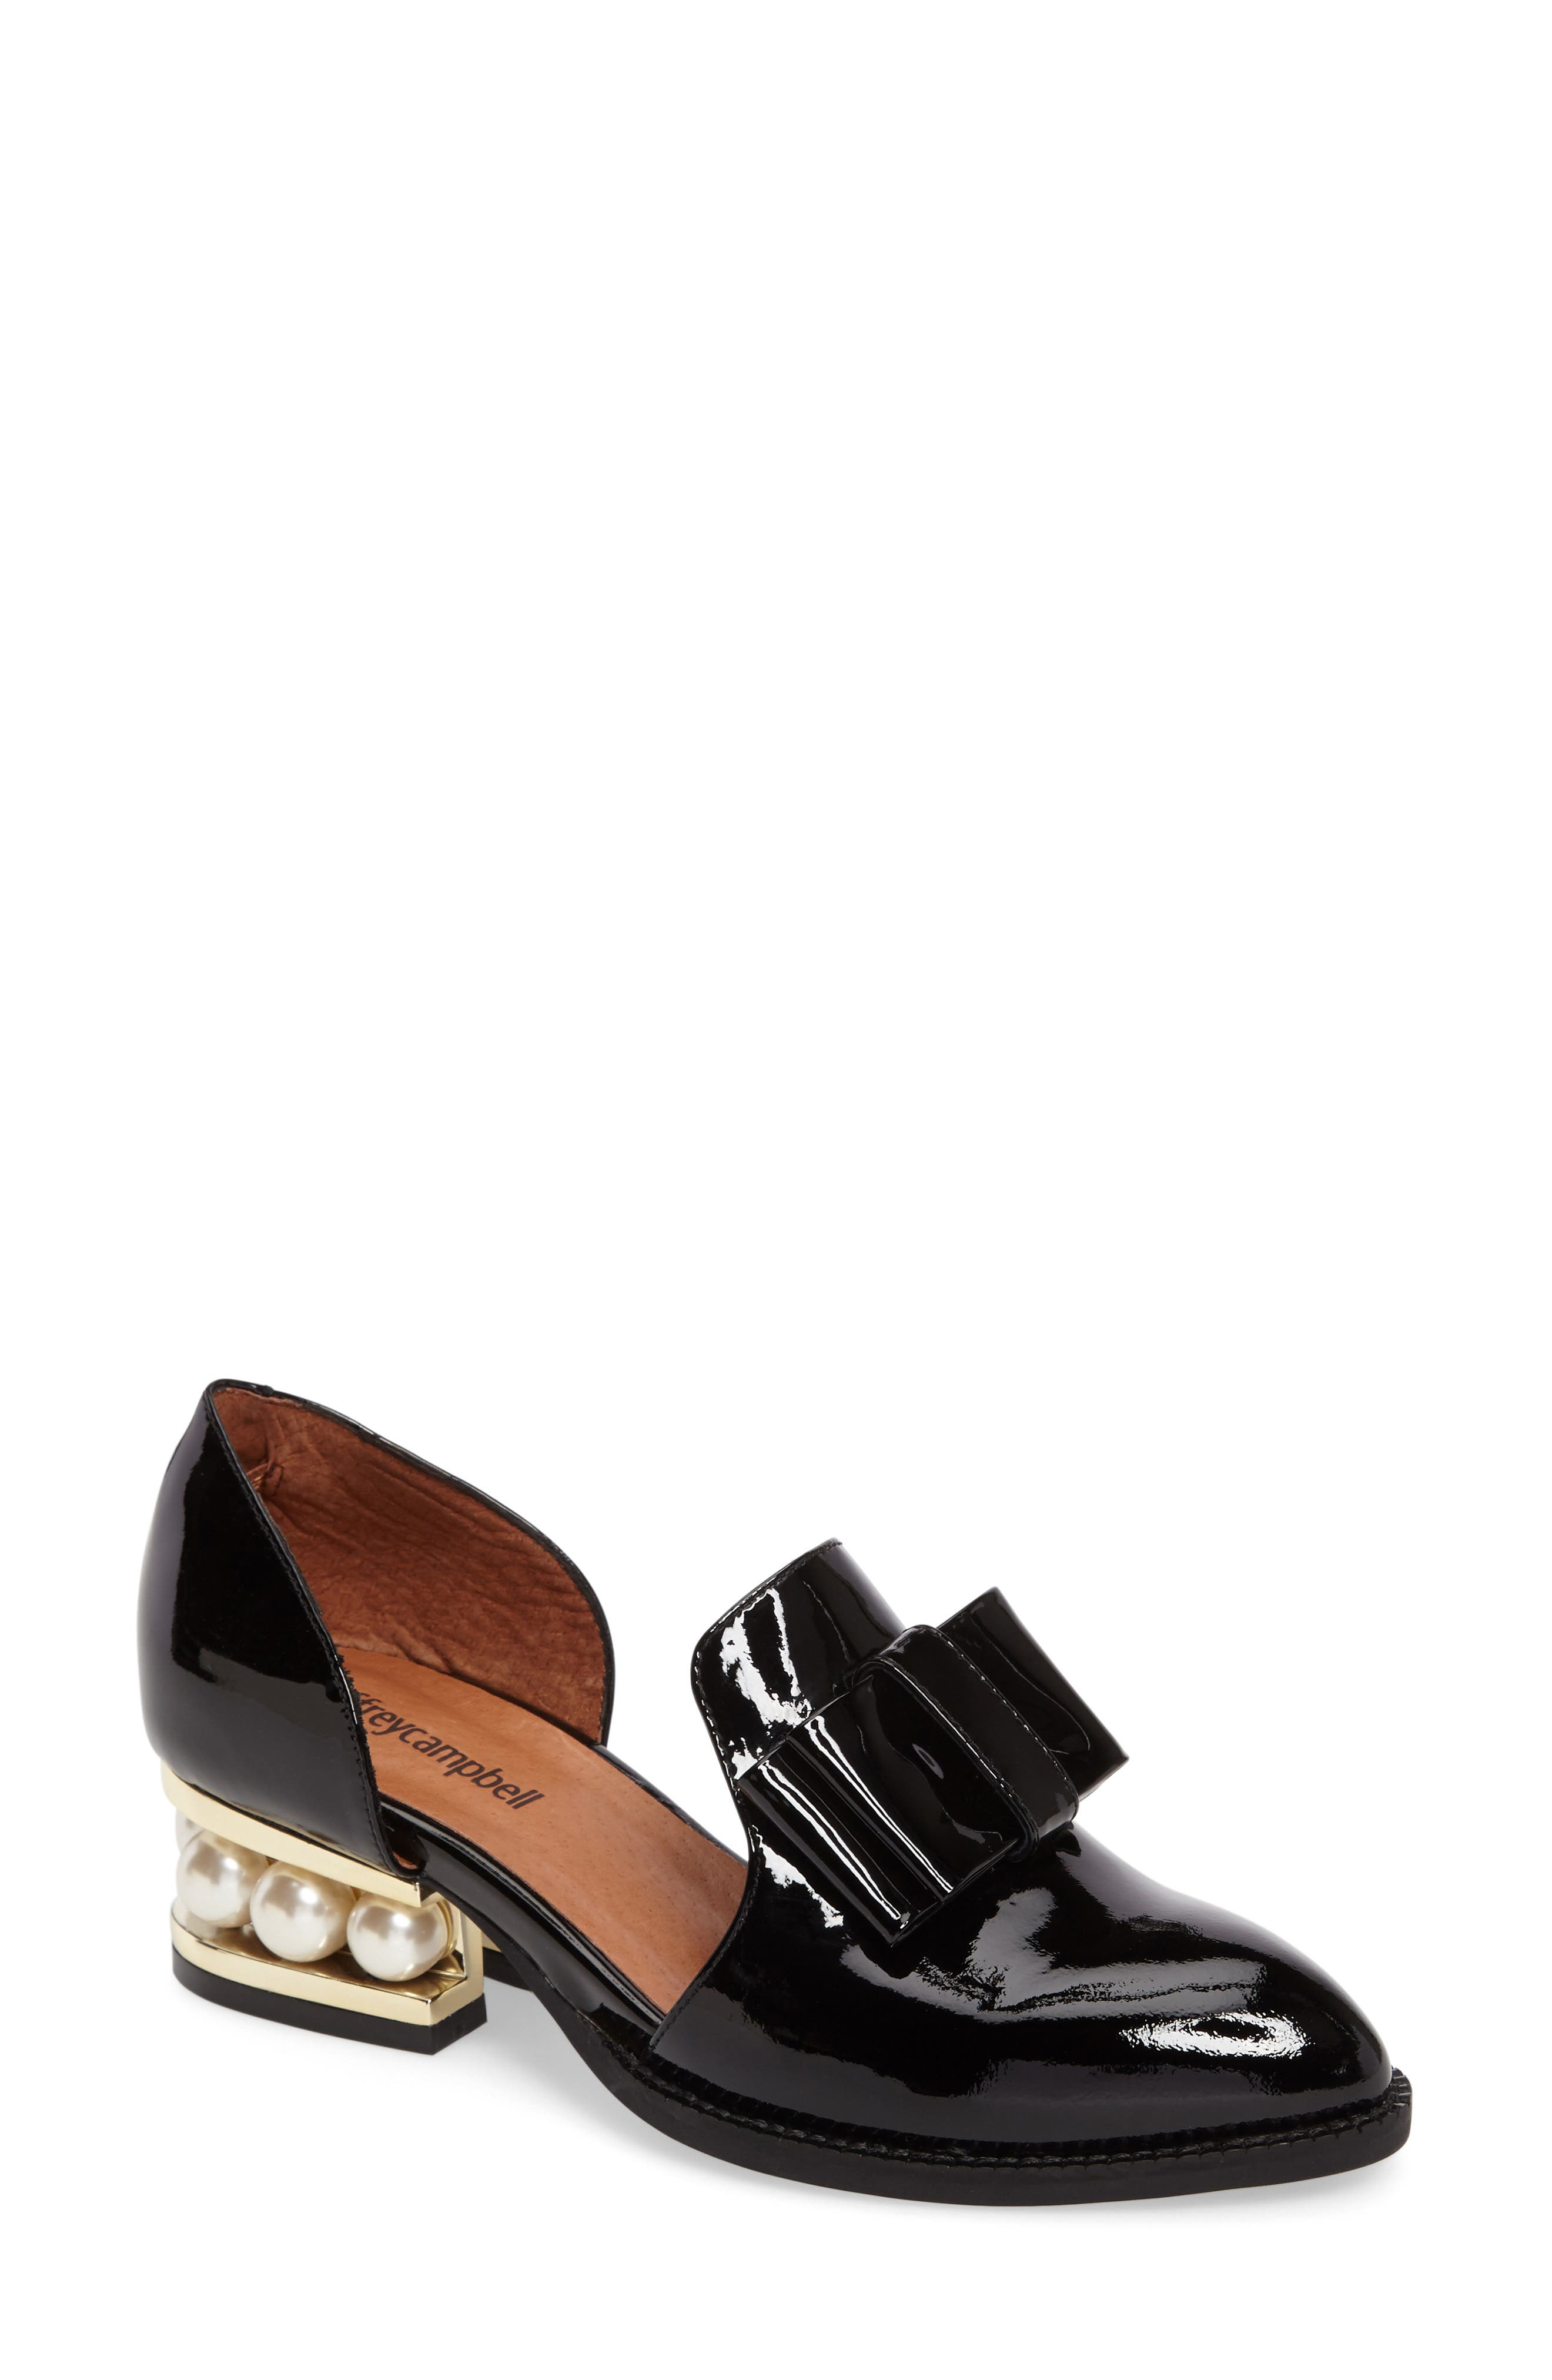 JEFFREY CAMPBELL Lawbow Loafer